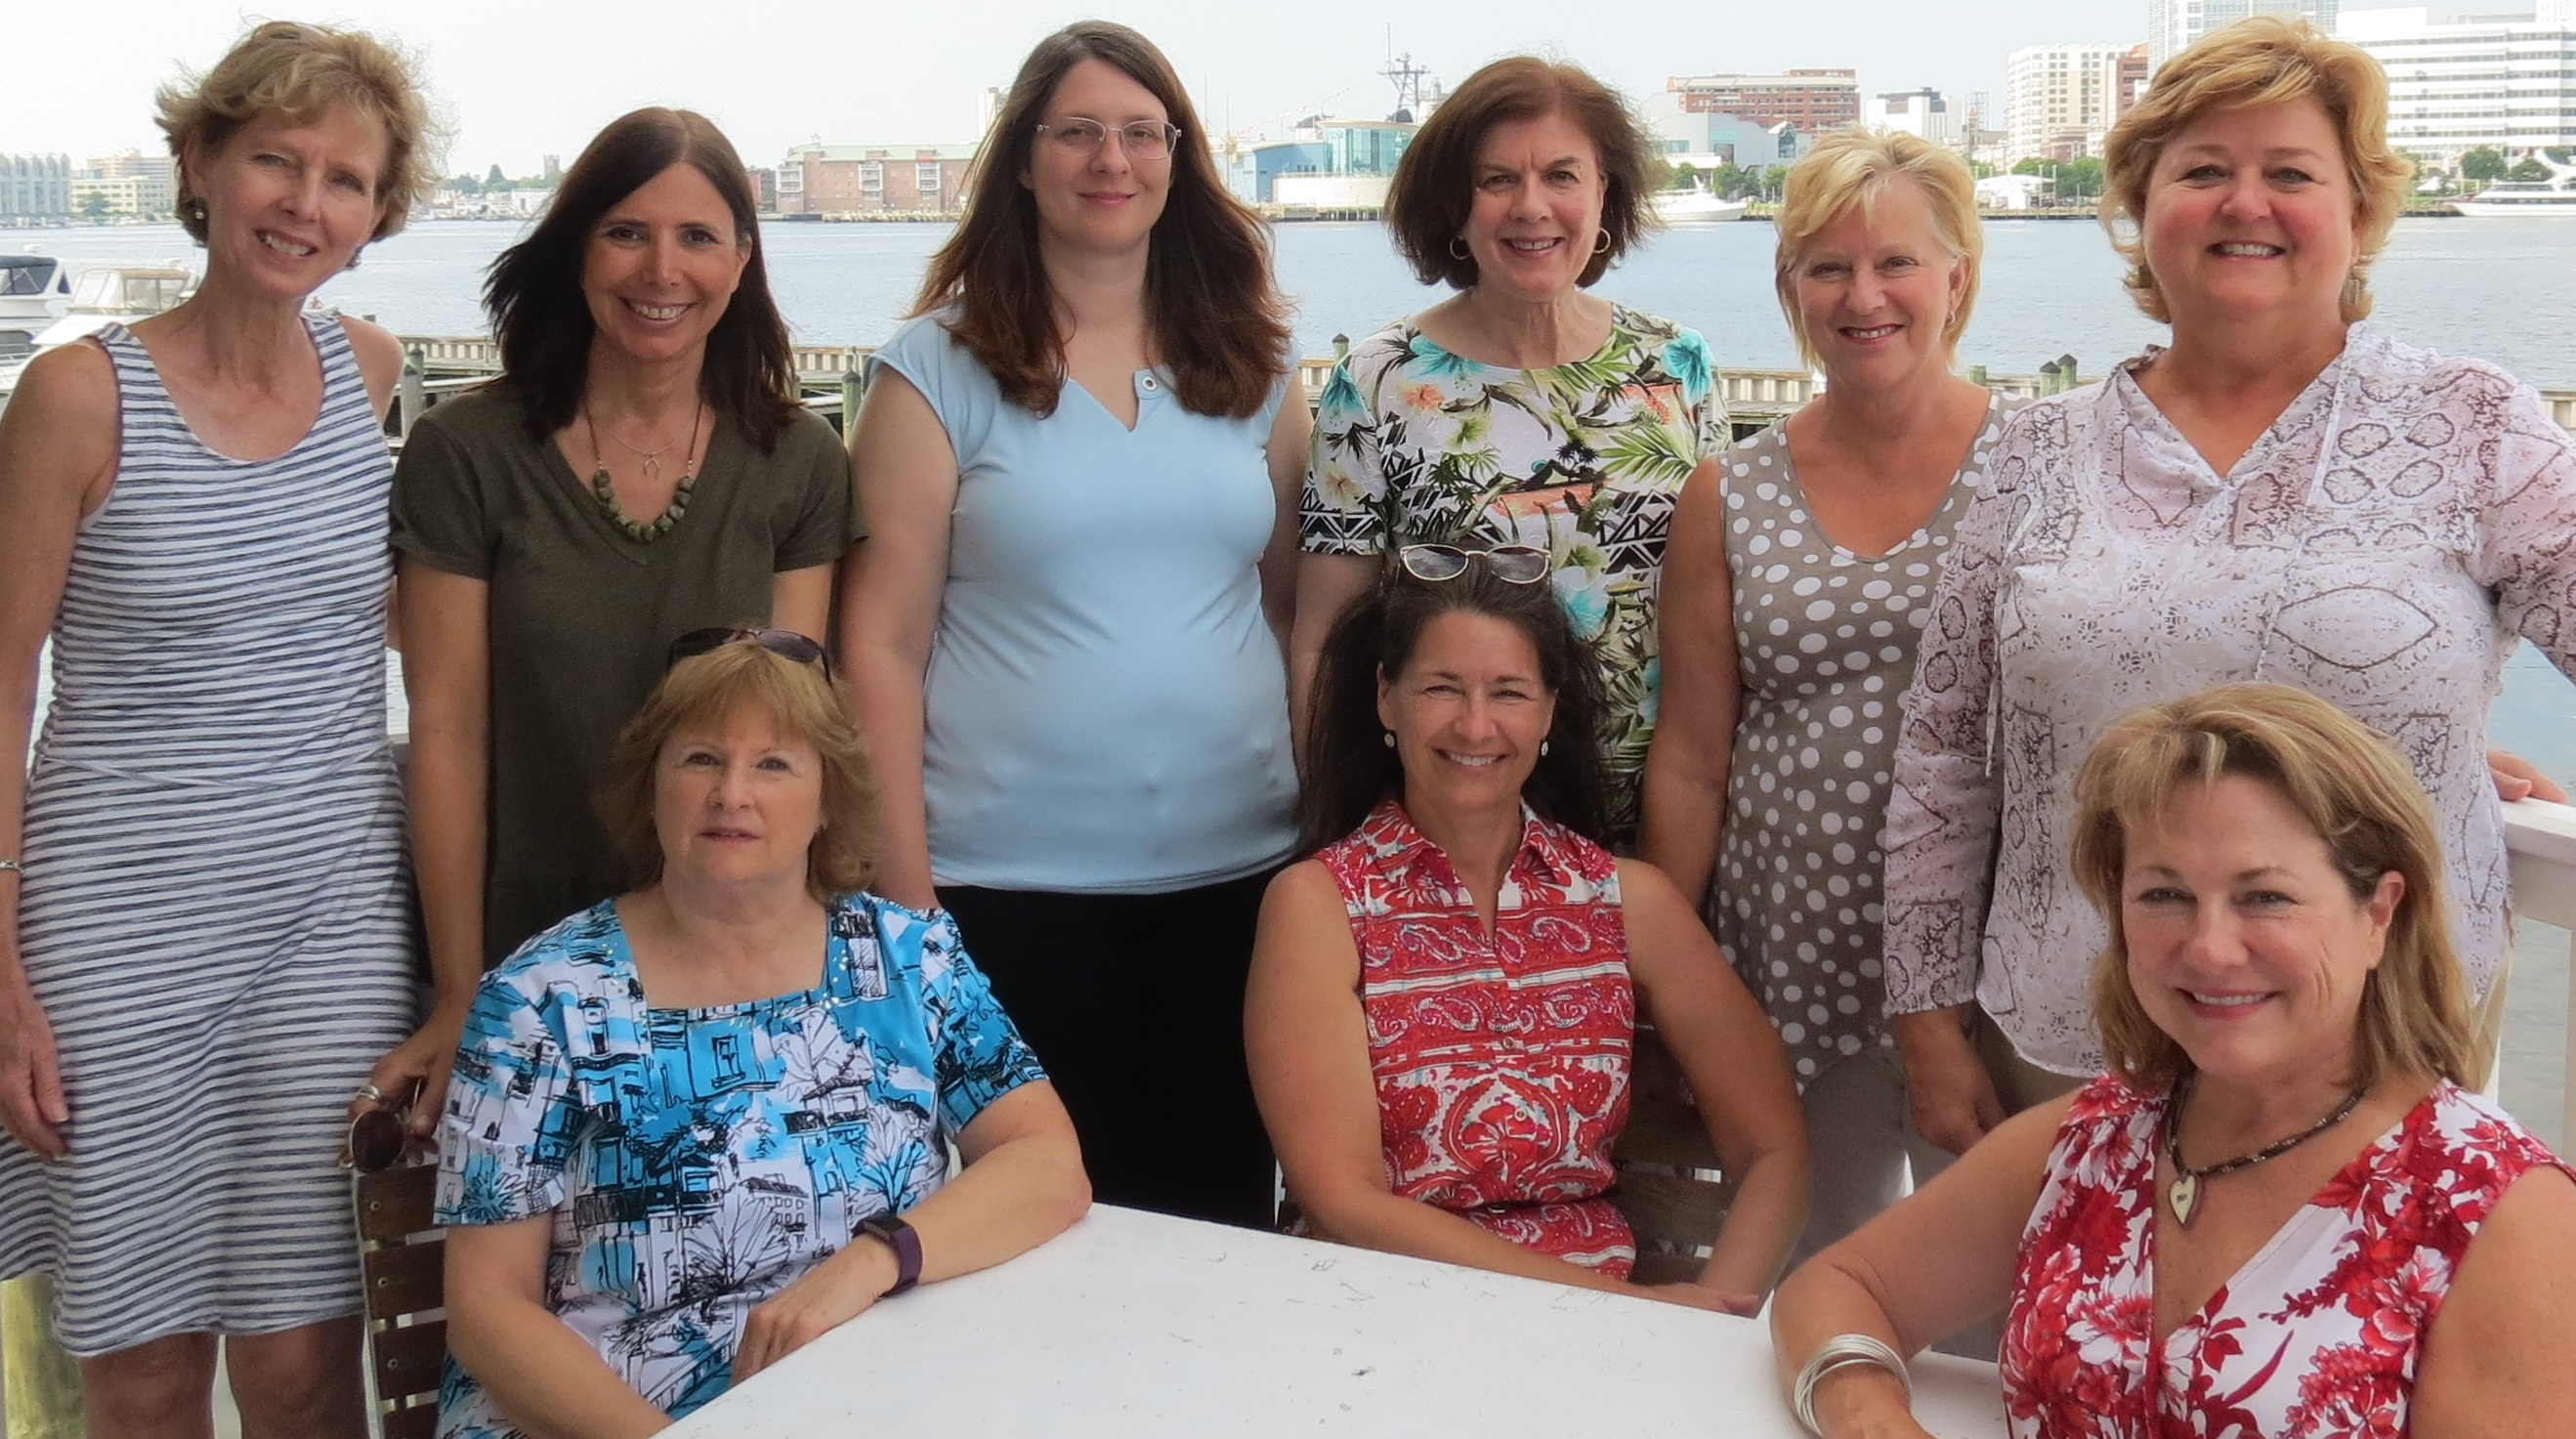 Standing (left to right) Joyce Hearn, COO; Laura Williamson; Tammy Nobles; Michelle Richards; Kathy Ward; Claudia Cotton, CEO Seated (left to right) Teresa Howell; Dee Fain; Betty Axson